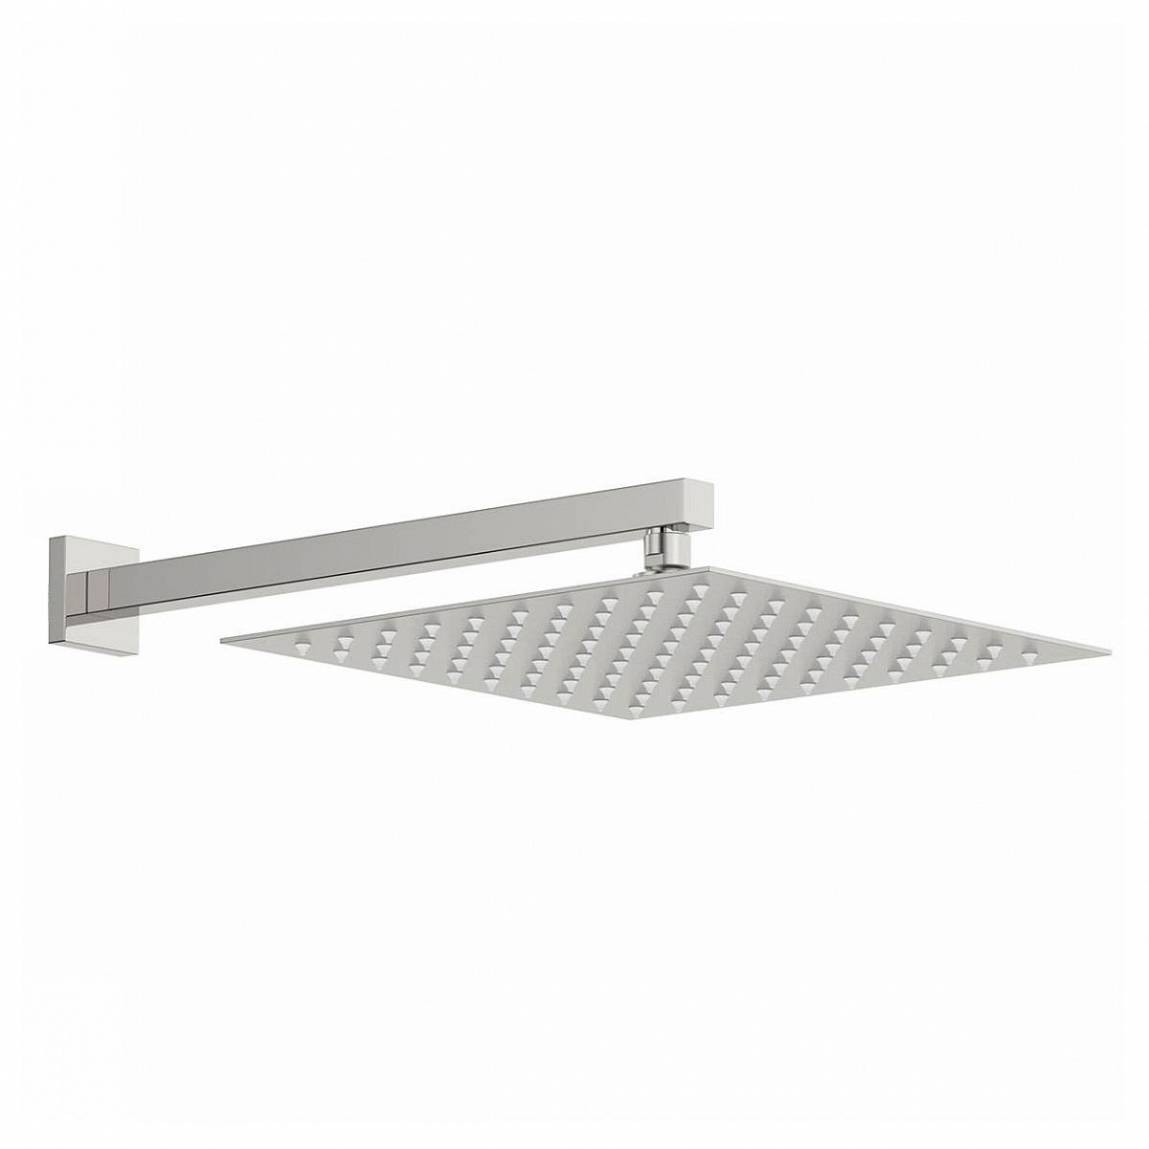 Image of Incus 300mm Shower Head & Square Wall Arm